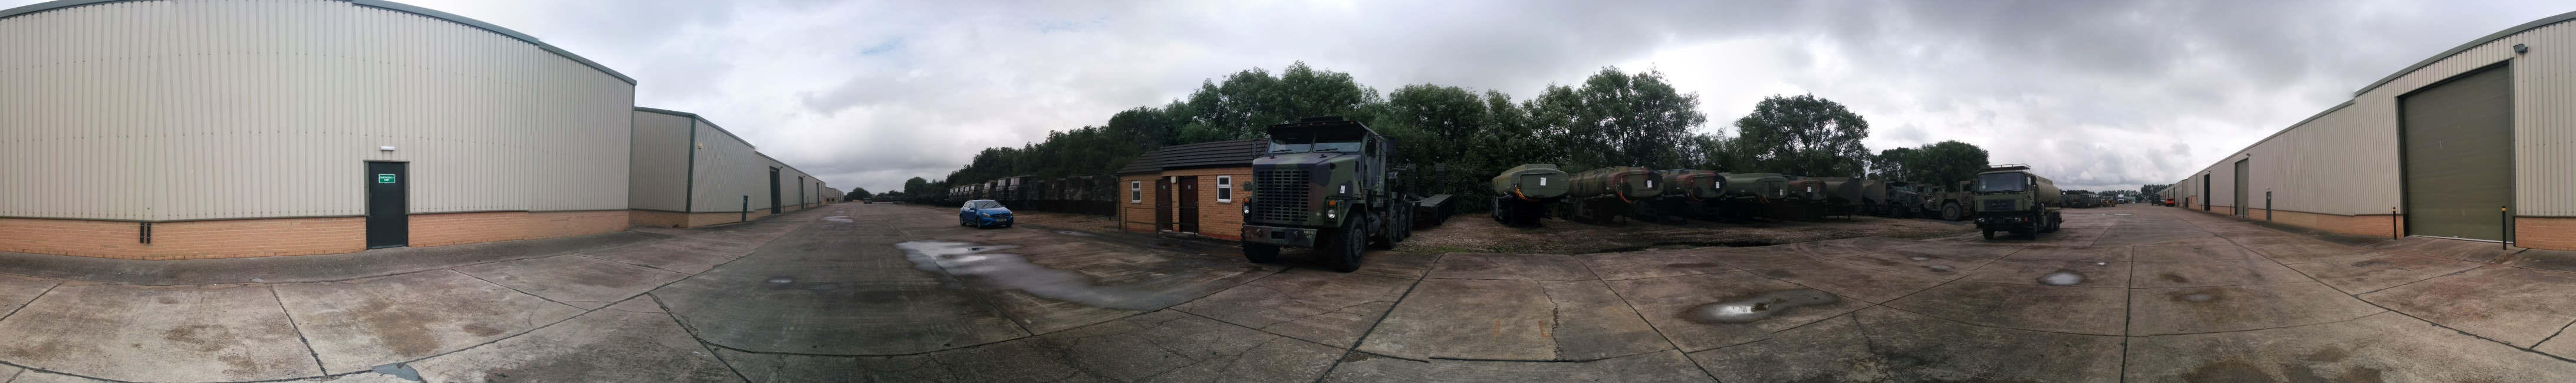 LJackson and co ltd | The Rocket site. Used ex army truck for sale